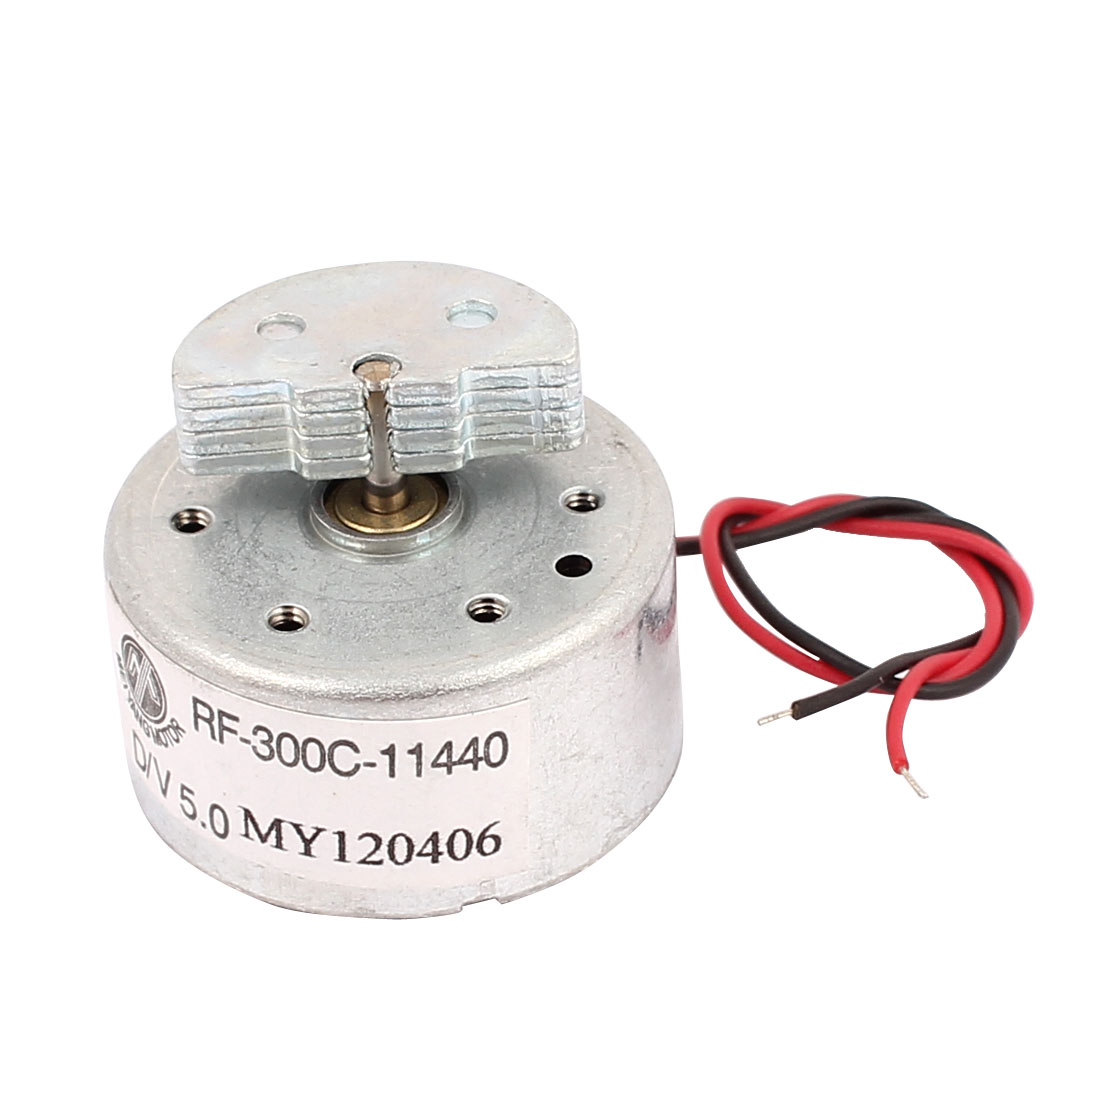 D-Shape-Shaft-Cylinder-Electric-Mini-Vibration-Motor-3000RPM-3-6VDC